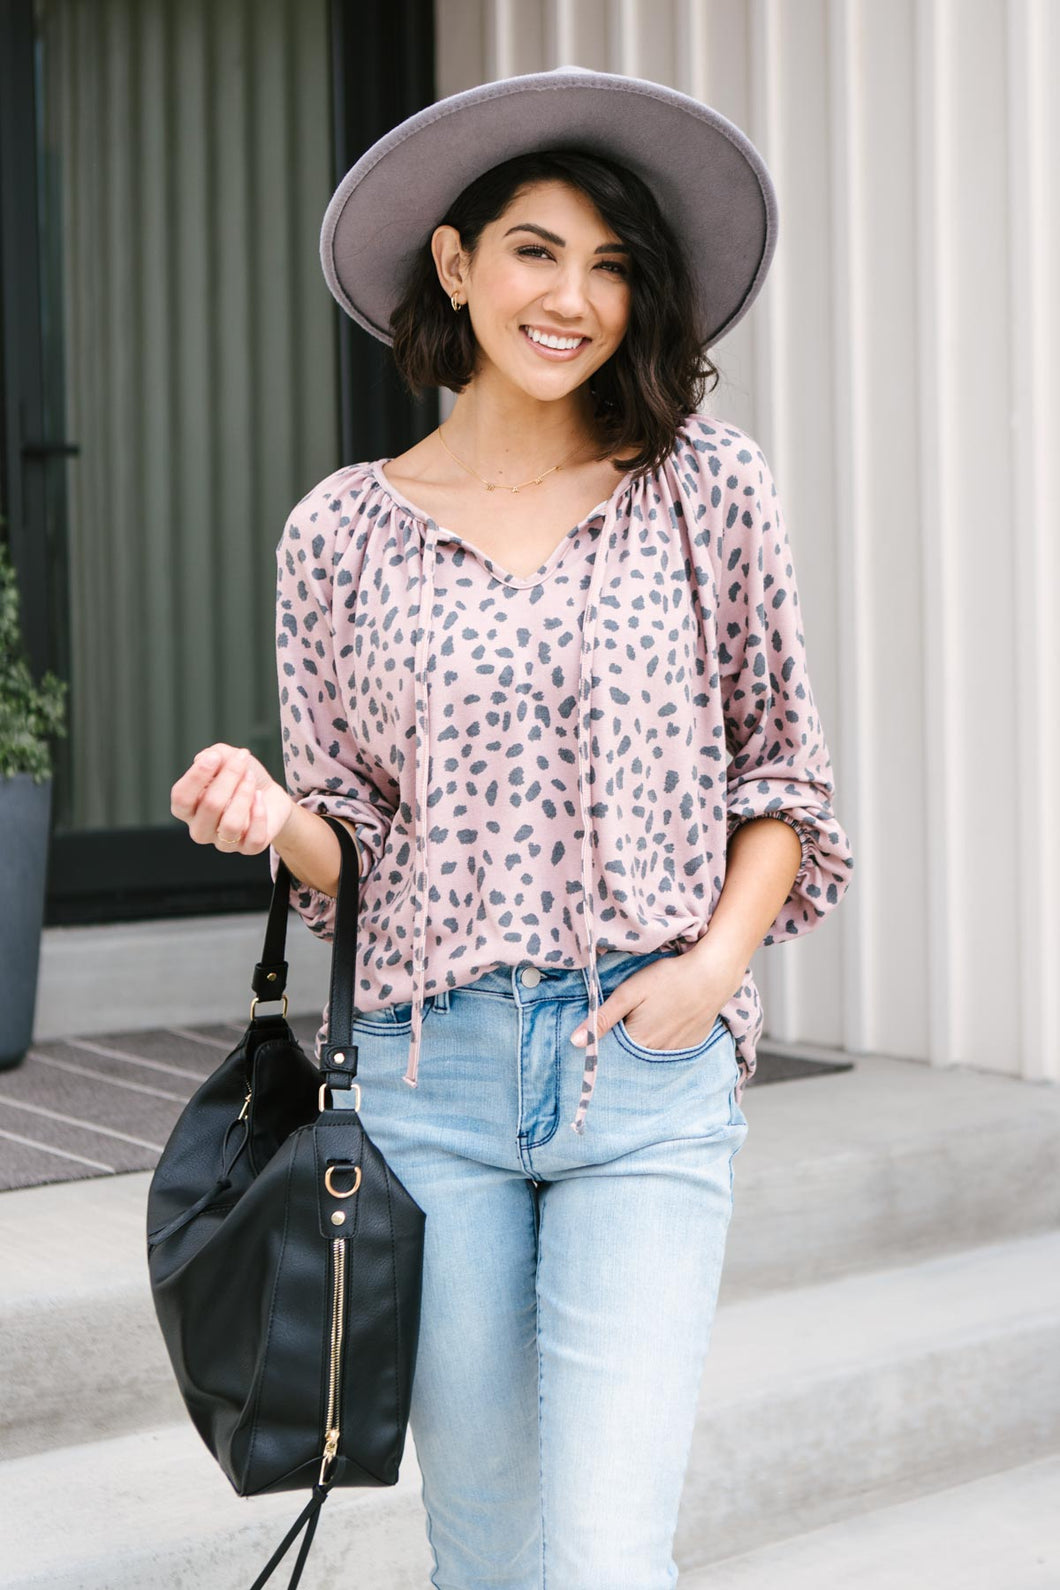 The Allie Animal Print Top - Smith & Vena